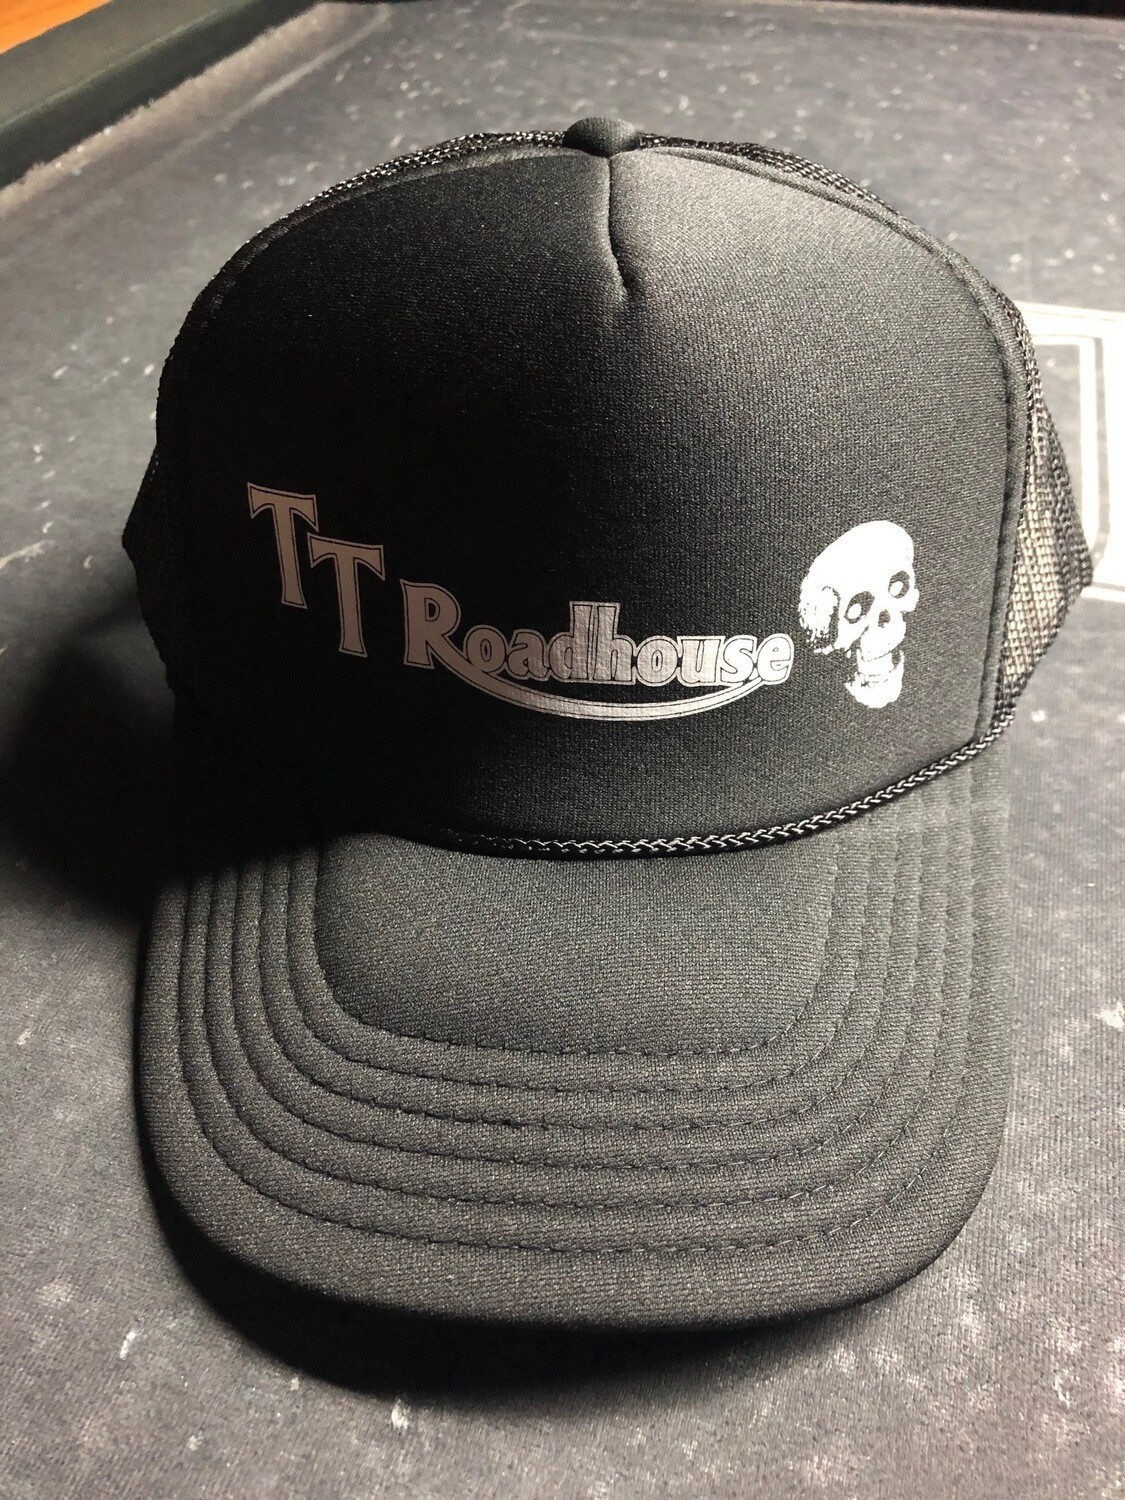 TT Roadhouse Hat